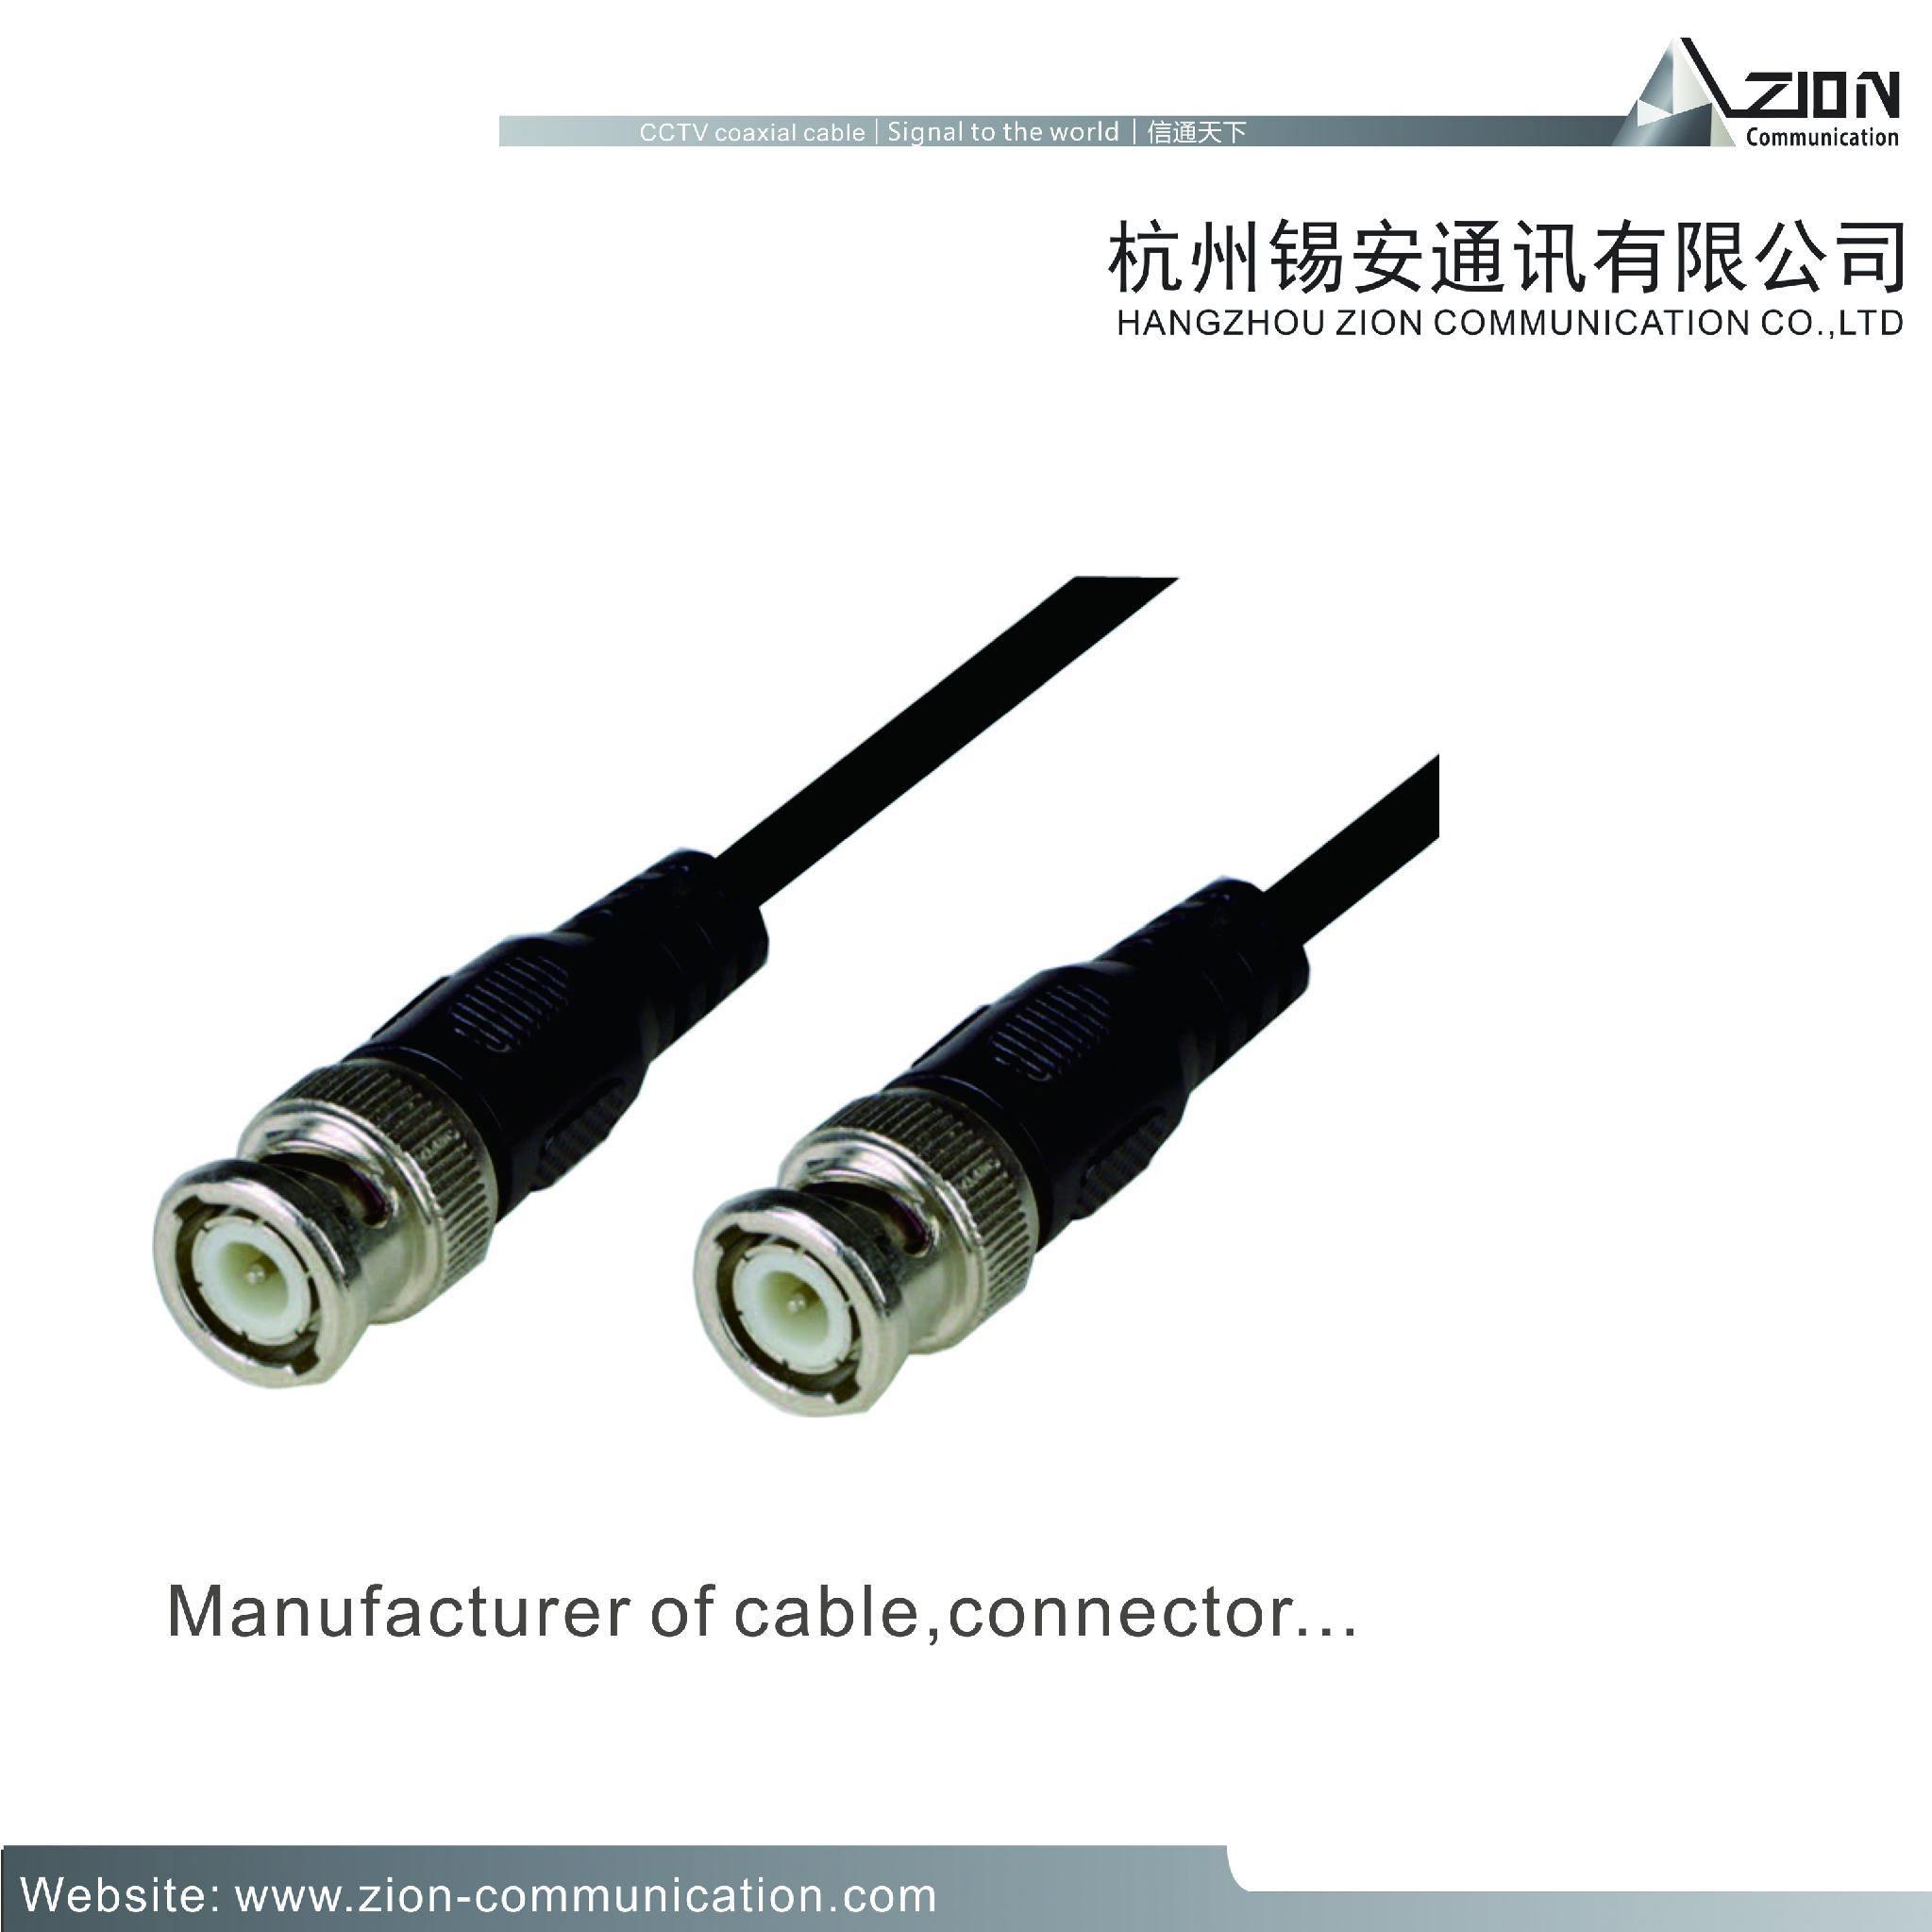 RG59 B/U - Clark Wire & Cable 0.64BC SPE 95% CCA 6.0 PVC coaxial cable supplier 2